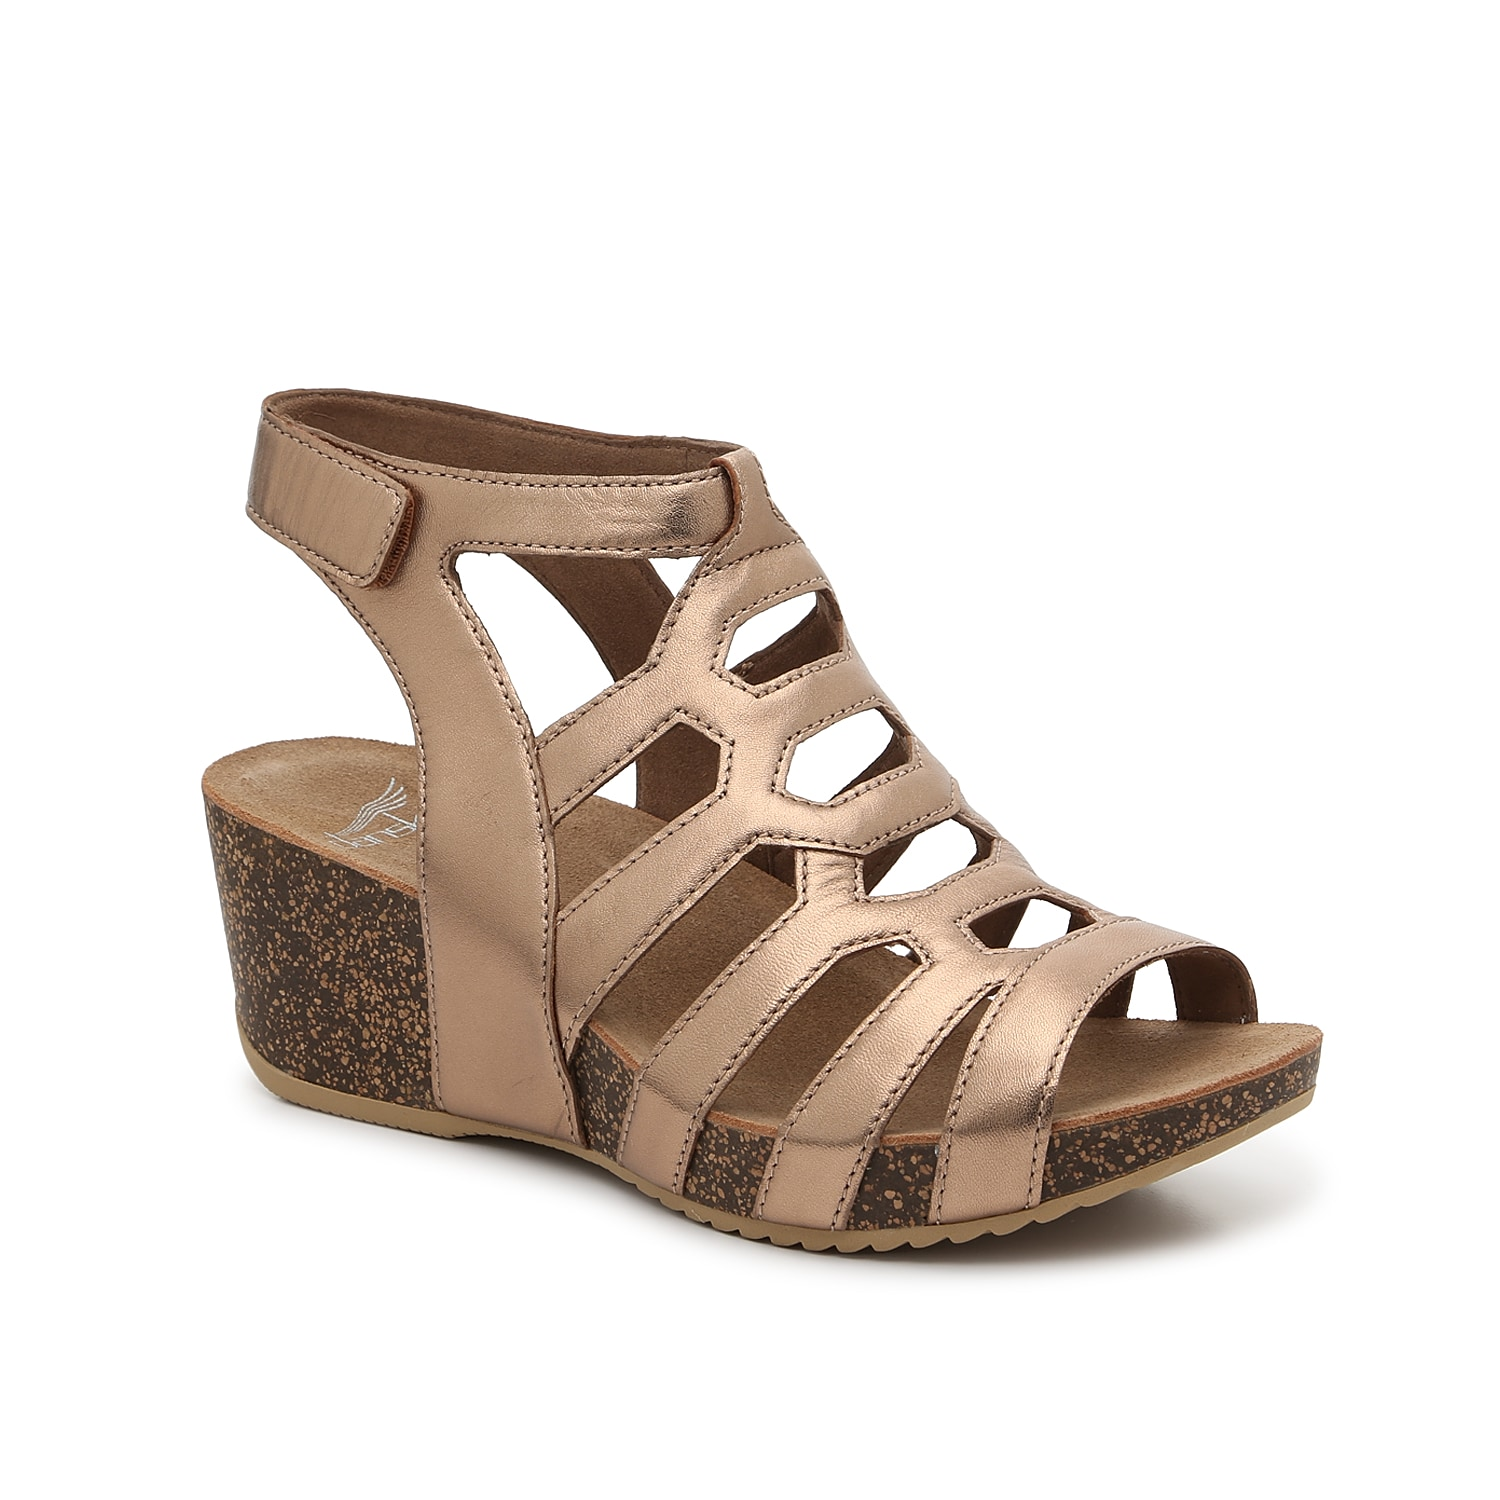 Stylish and supportive, the Selina wedge sandal from Dansko will become an instant favorite. Featuring a breathable leather lining and molded footbed, this cut-out pair complements all your outfits!